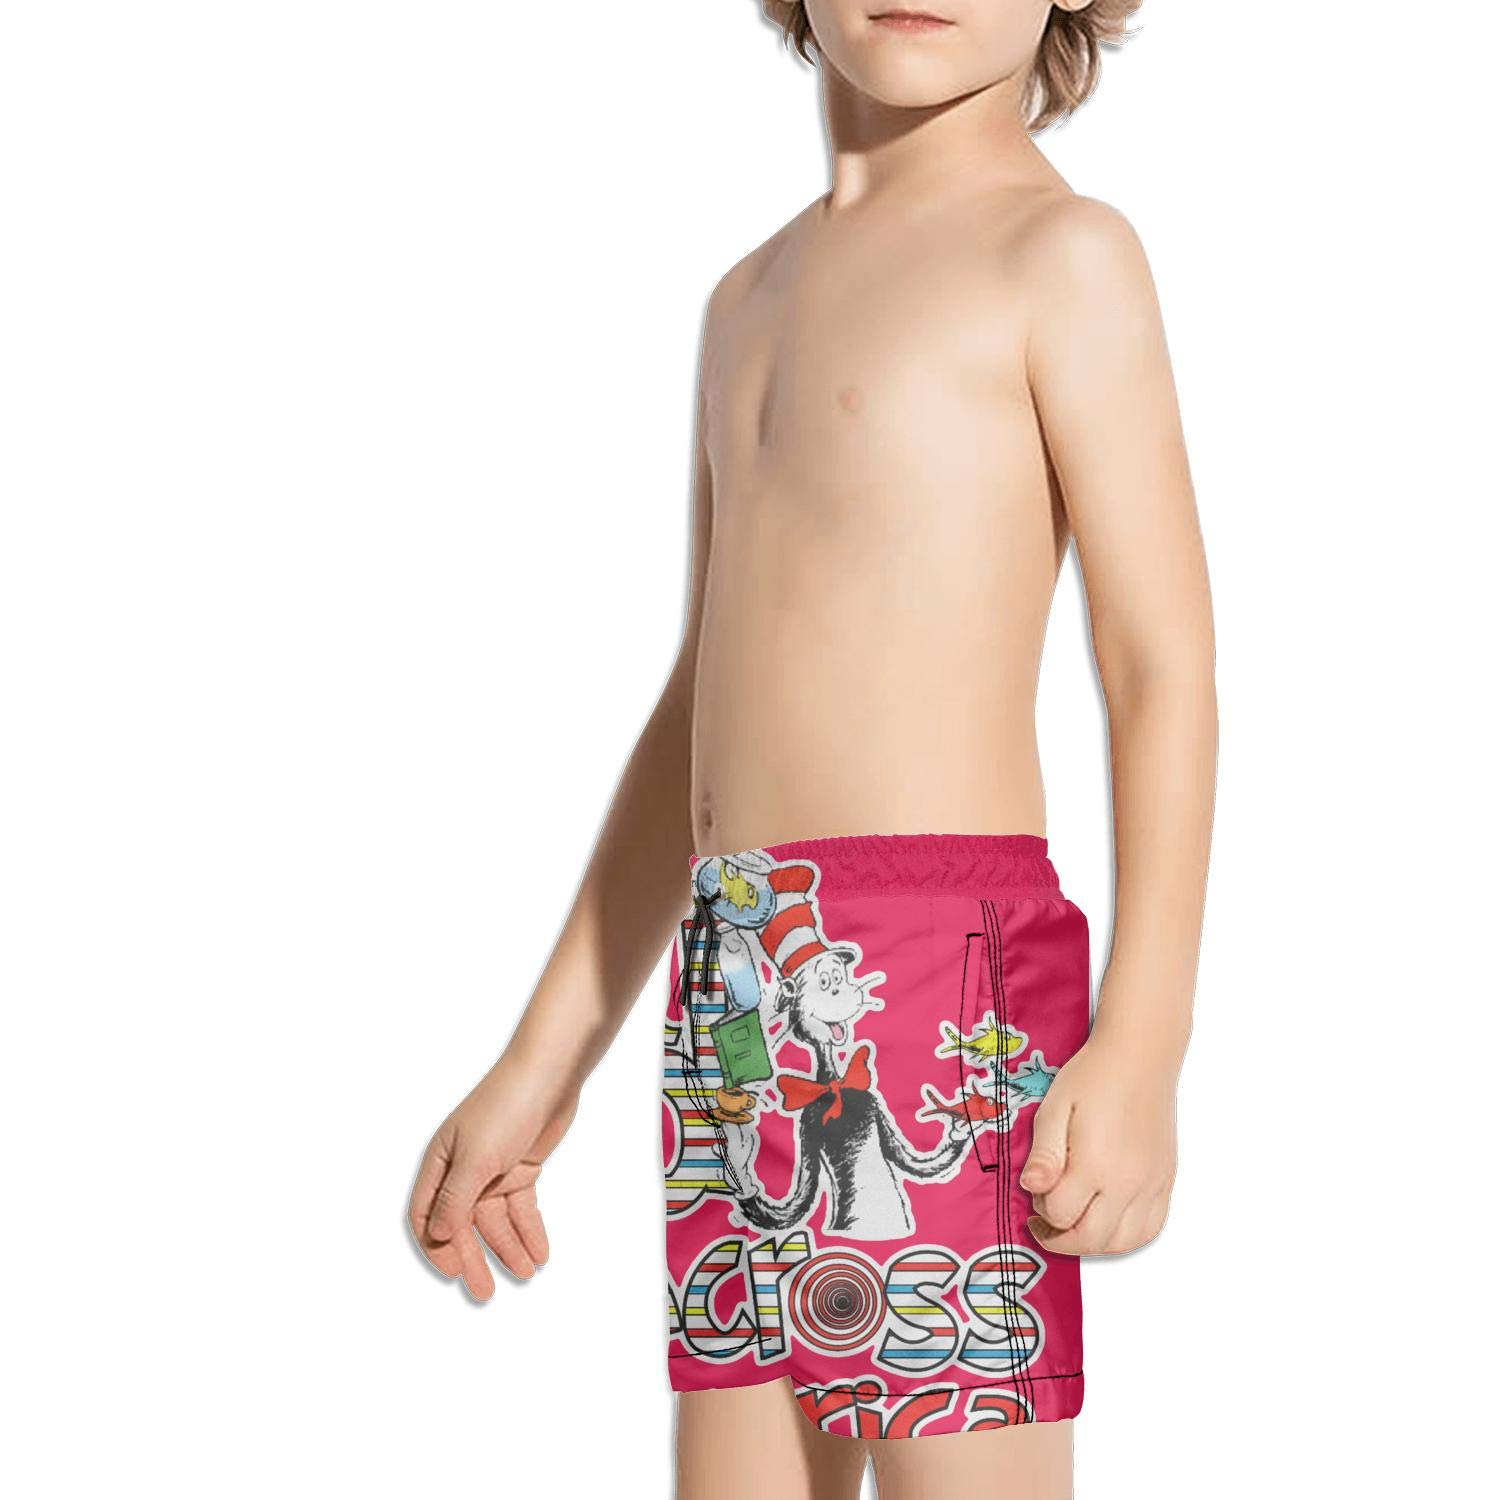 uejnnbc Read Across America flish Running Printed Beach Swim Shorts